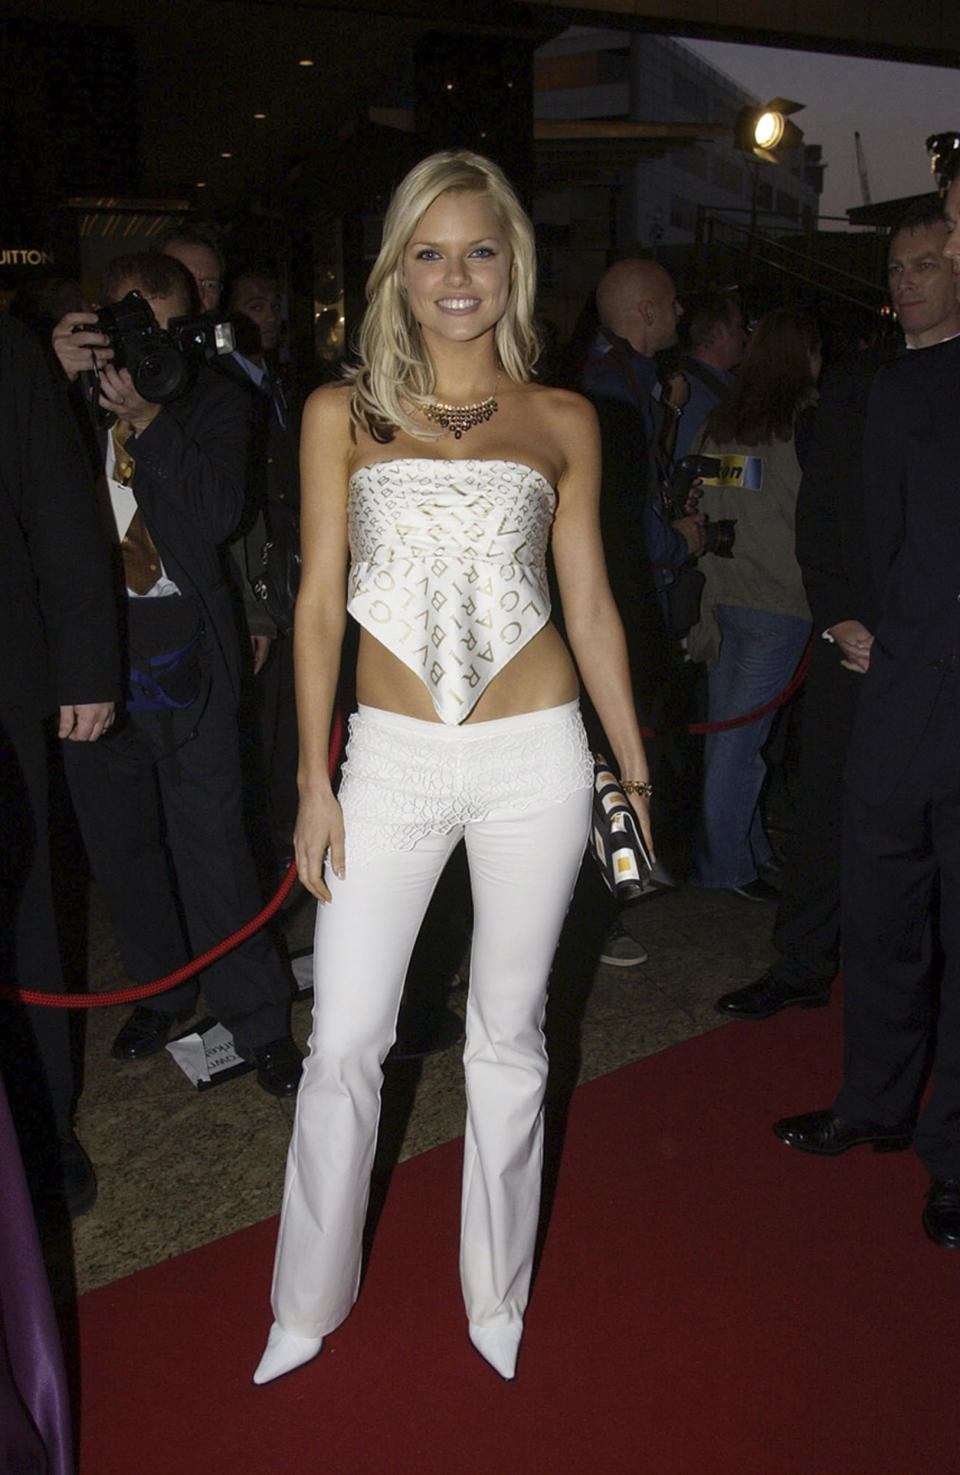 Blonde bombshell Sophie Monk put a fashion foot wrong in this all-white ensemble in 2002. The ex-Bachelorette paired her low-waisted flares with pointy-toe heels and what looks to be a scarf as a boob-tube top. It's all a bit casual for a red carpet - but at least she didn't have to get changed before the after party. Photo: Getty Images.